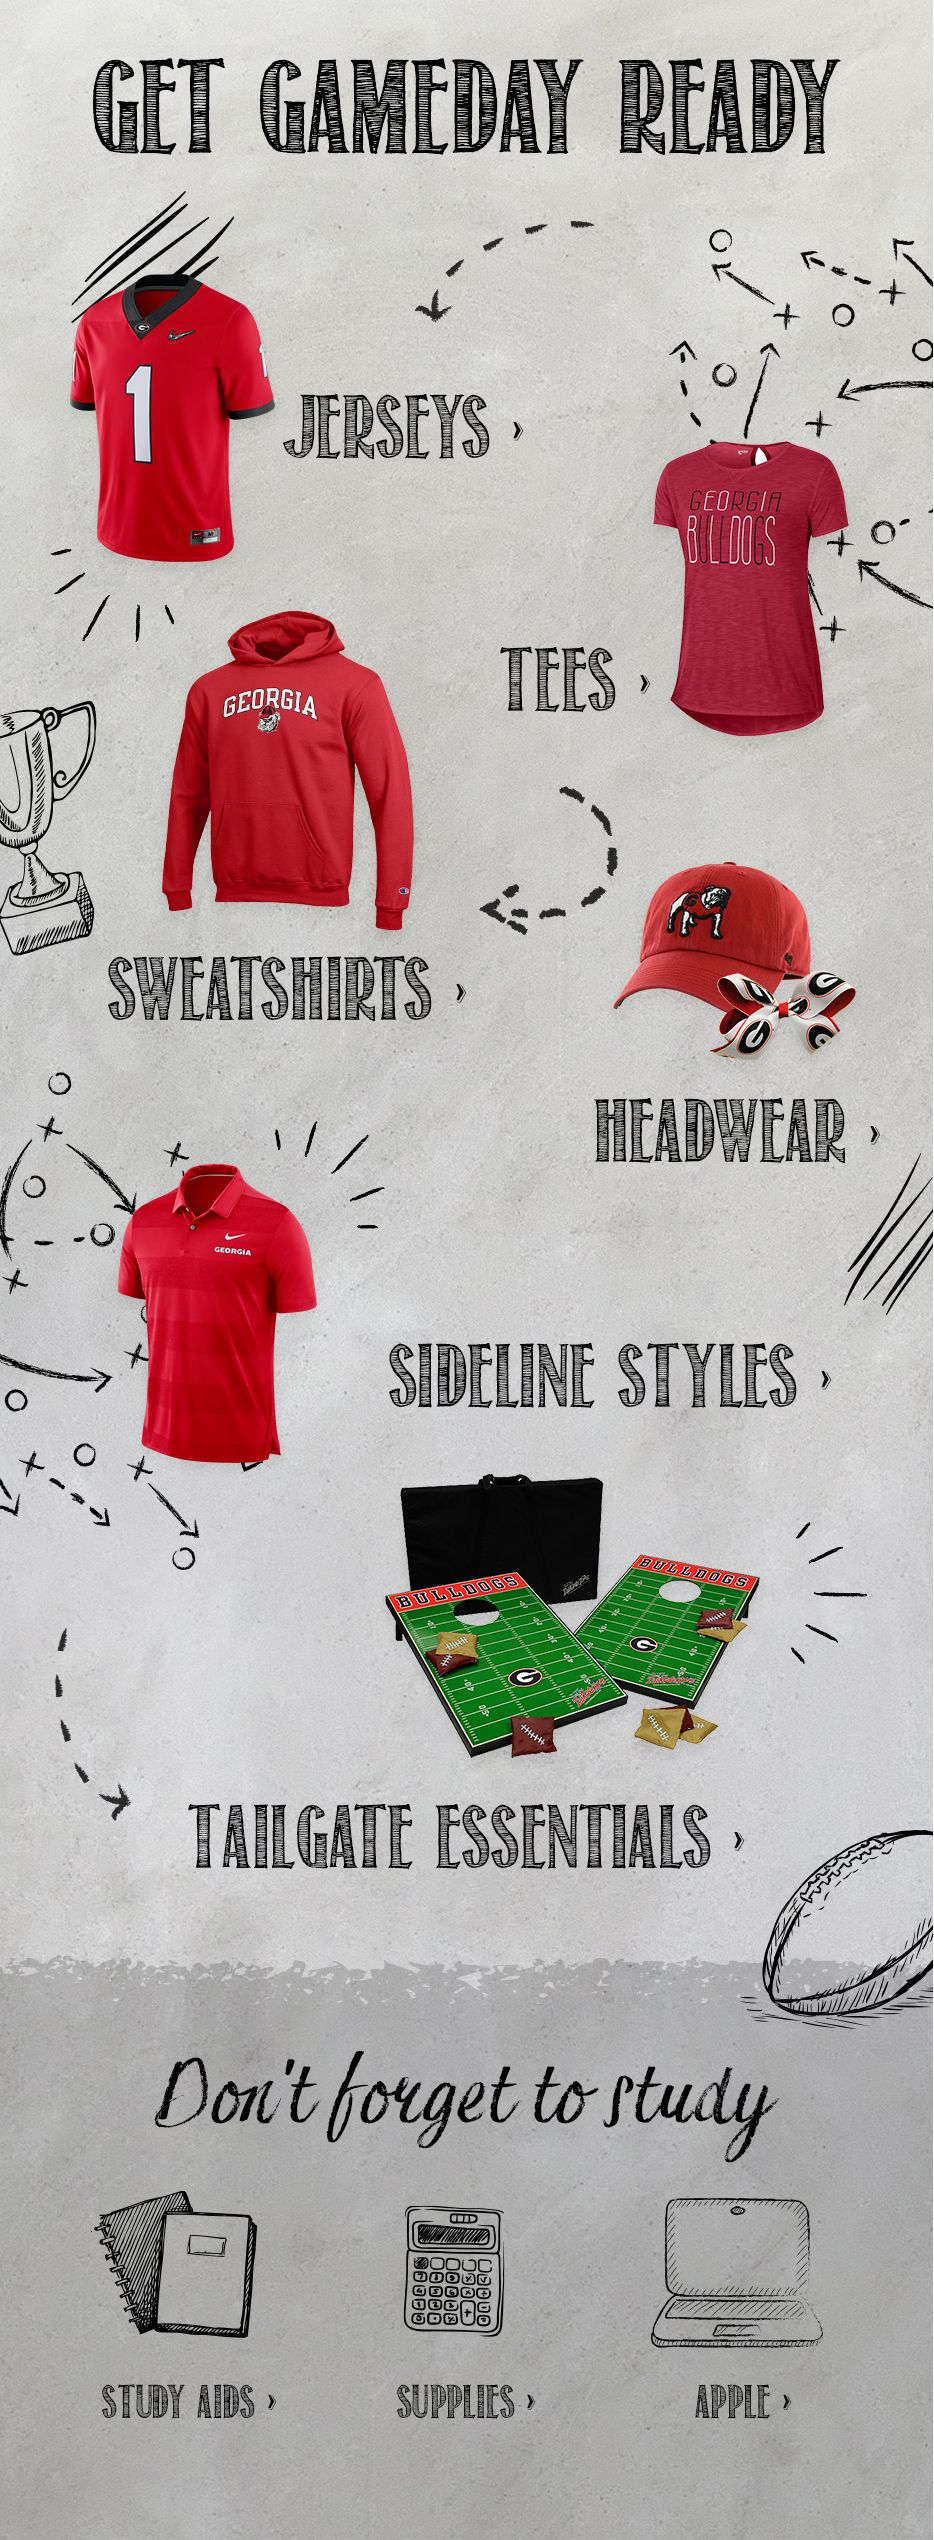 Georgia bulldogs apparel uga gear merchandise gifts get gameday ready fandeluxe Choice Image